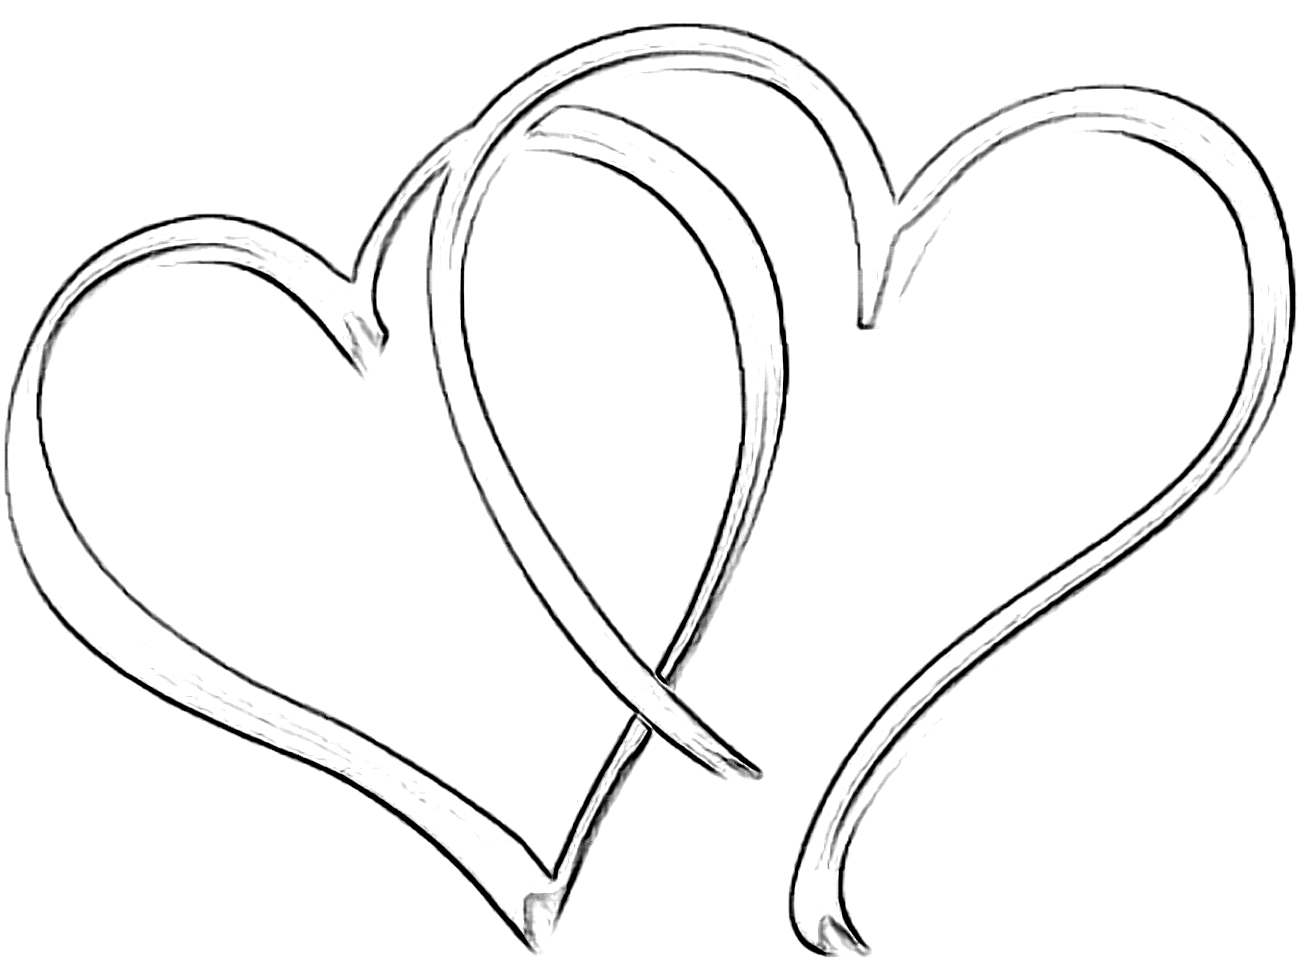 Line Art Love Heart : Heart shapes